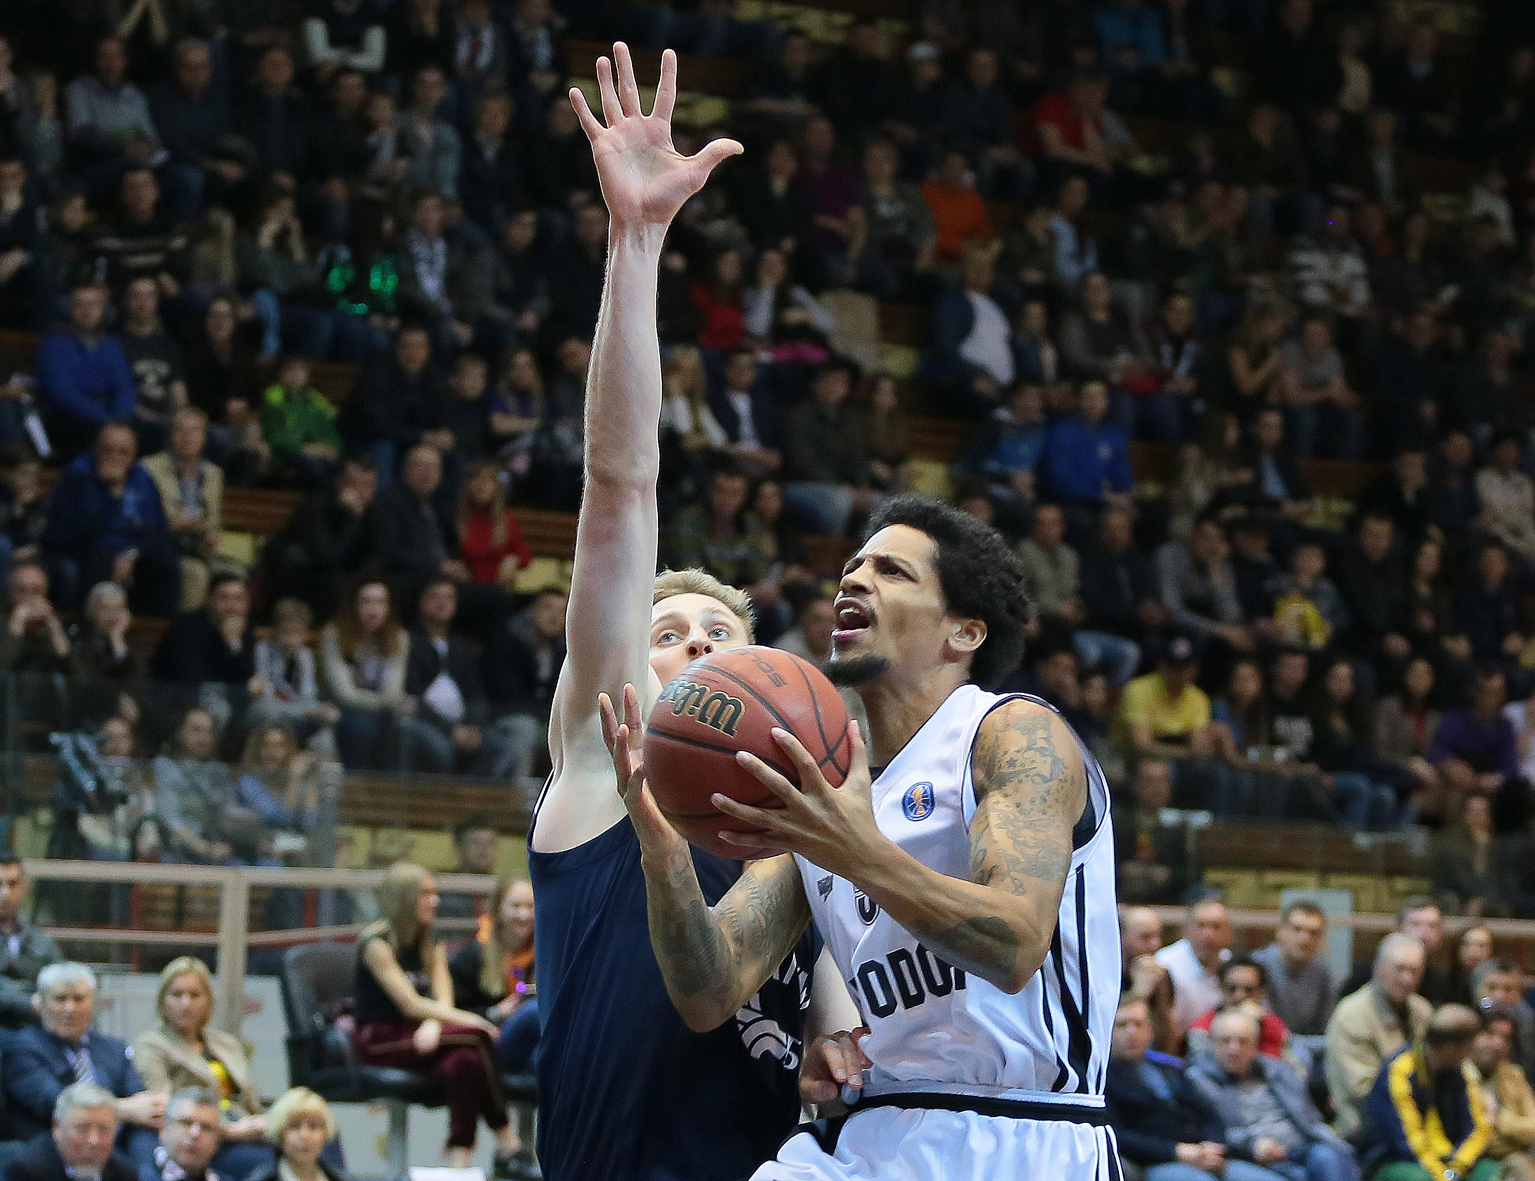 Avtodor Surges In Second Half To Stop Tsmoki